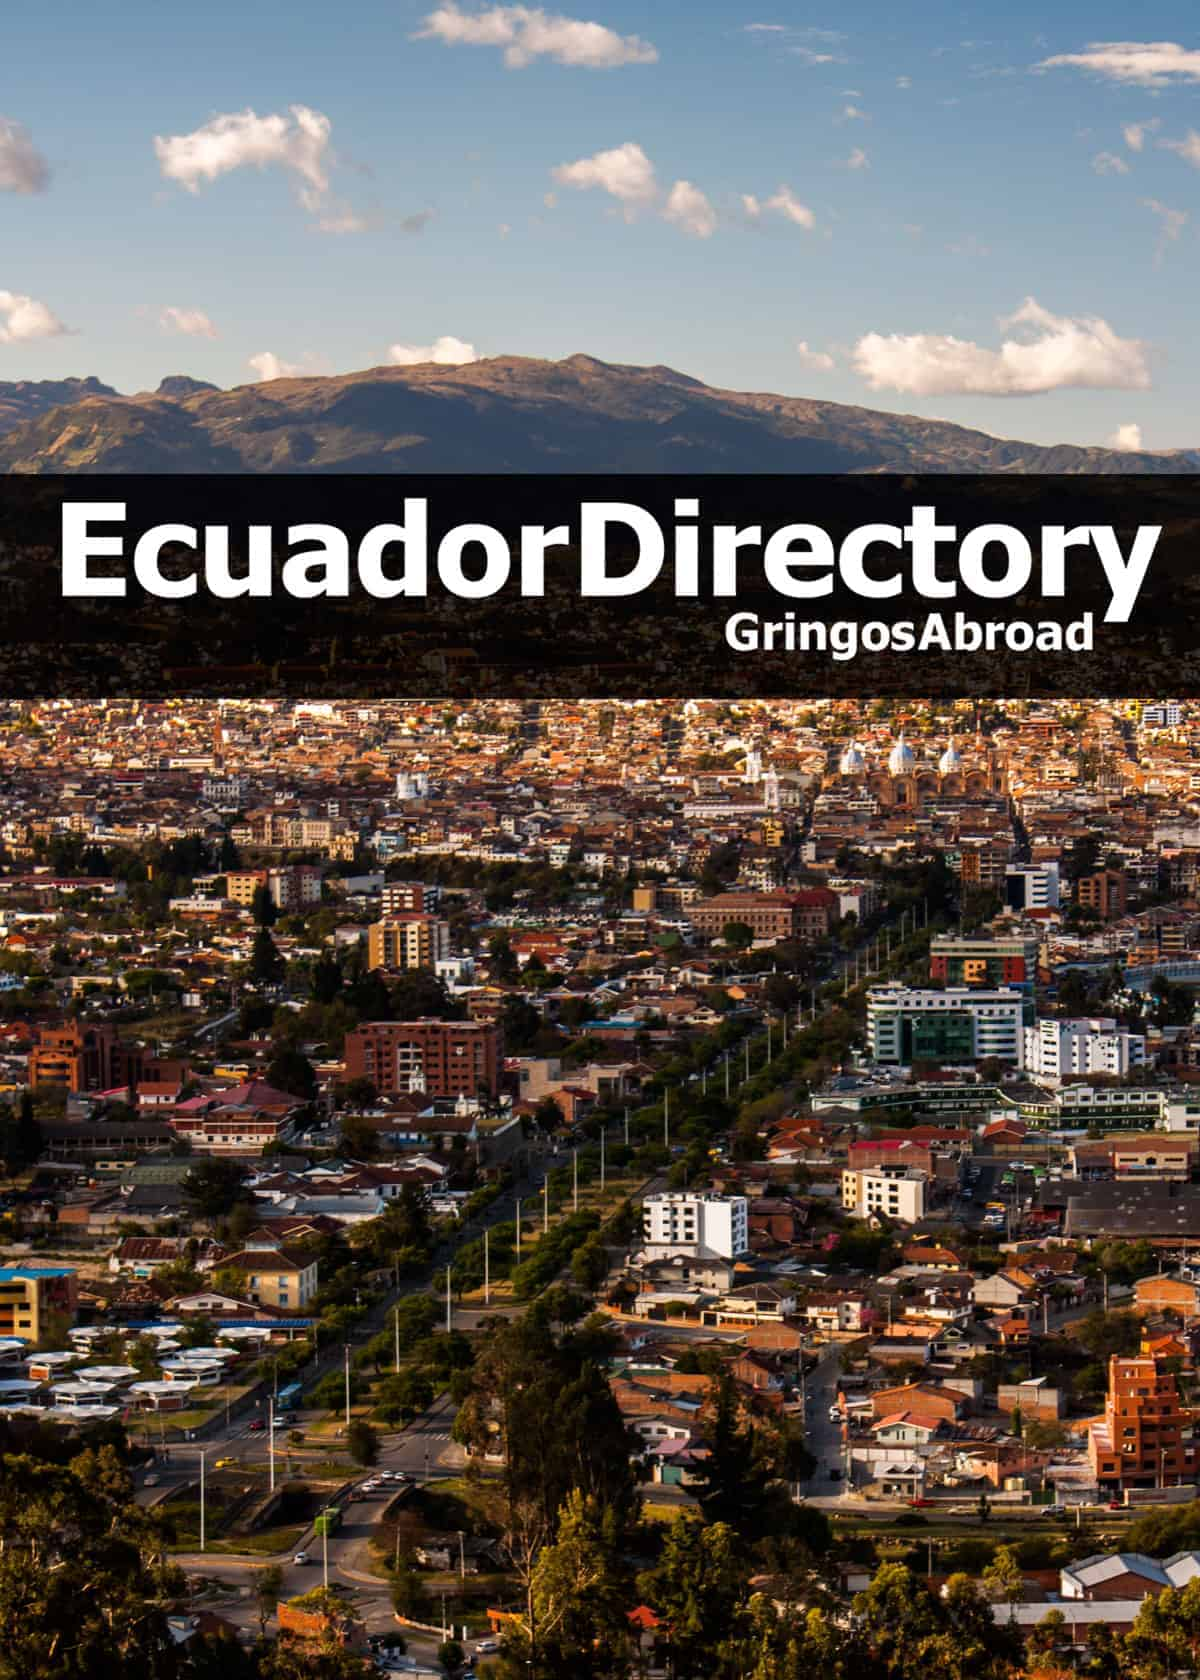 Ecuador business directory